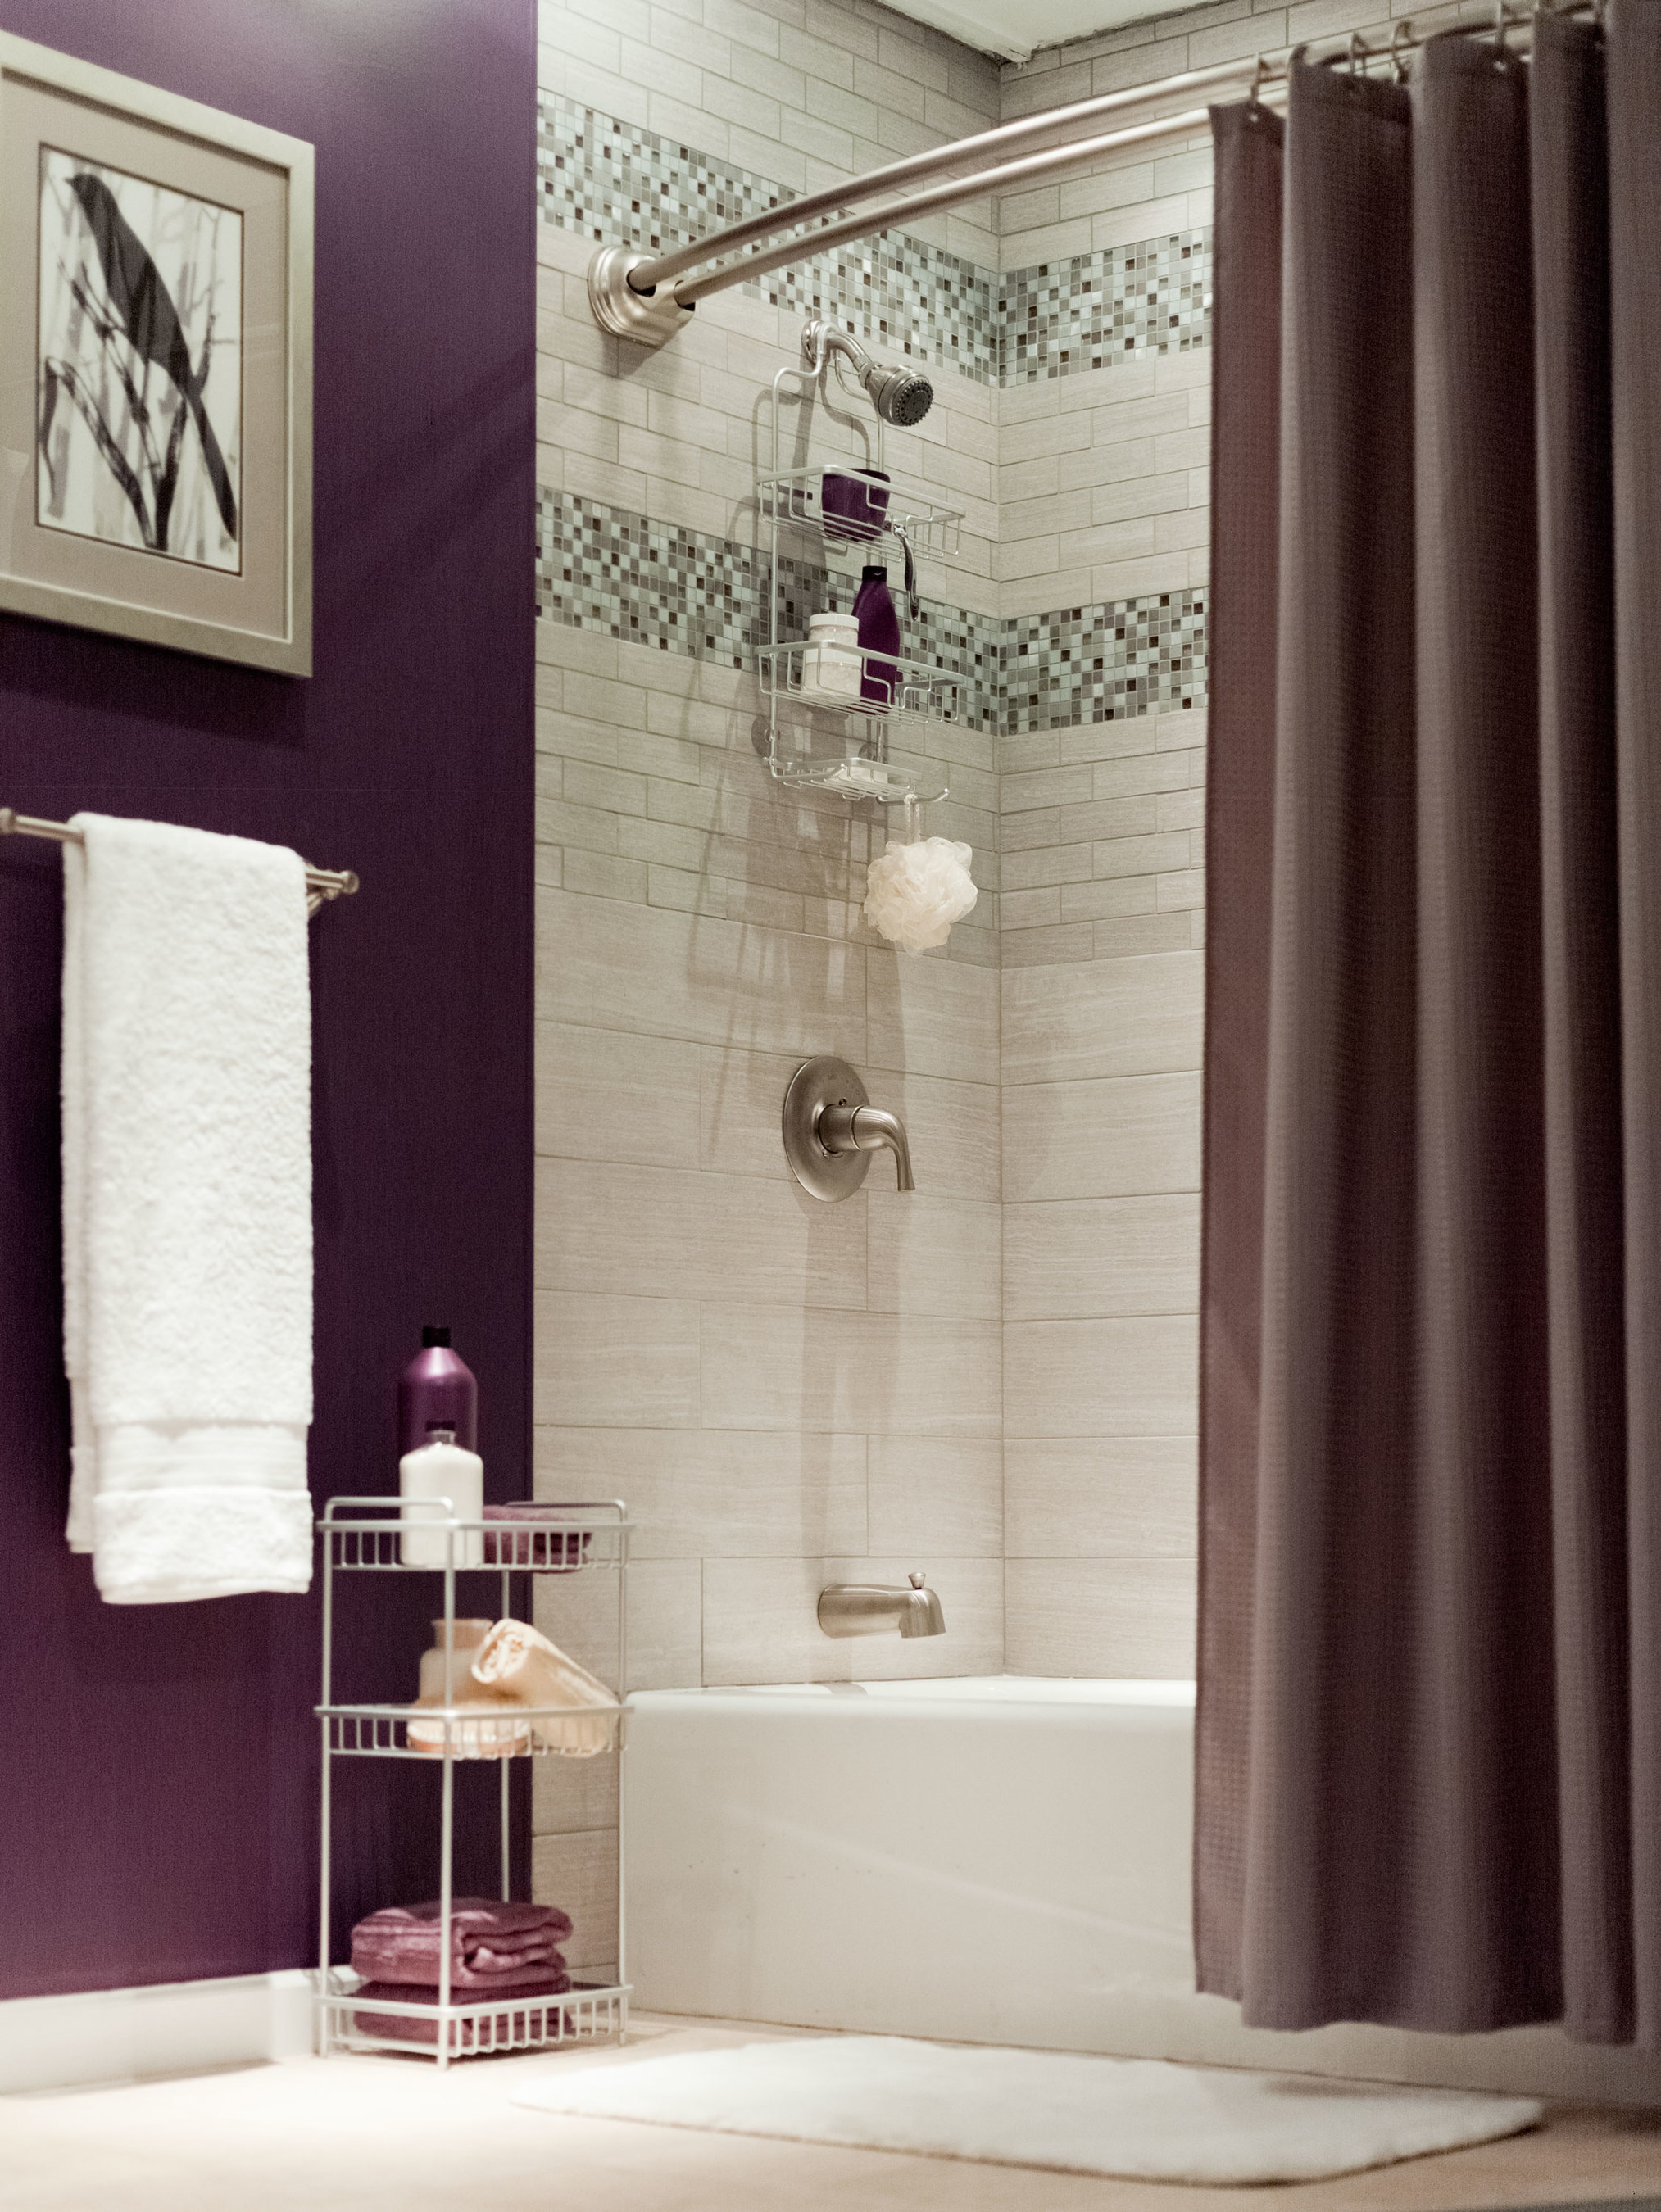 NeverRust(TM) Shower Rods and Caddies are made of lightweight yet strong, durable aluminum. The products have launched at home centers, department stores and specialty retailers and online. (PRNewsFoto/Zenith Products Corp. (ZPC))